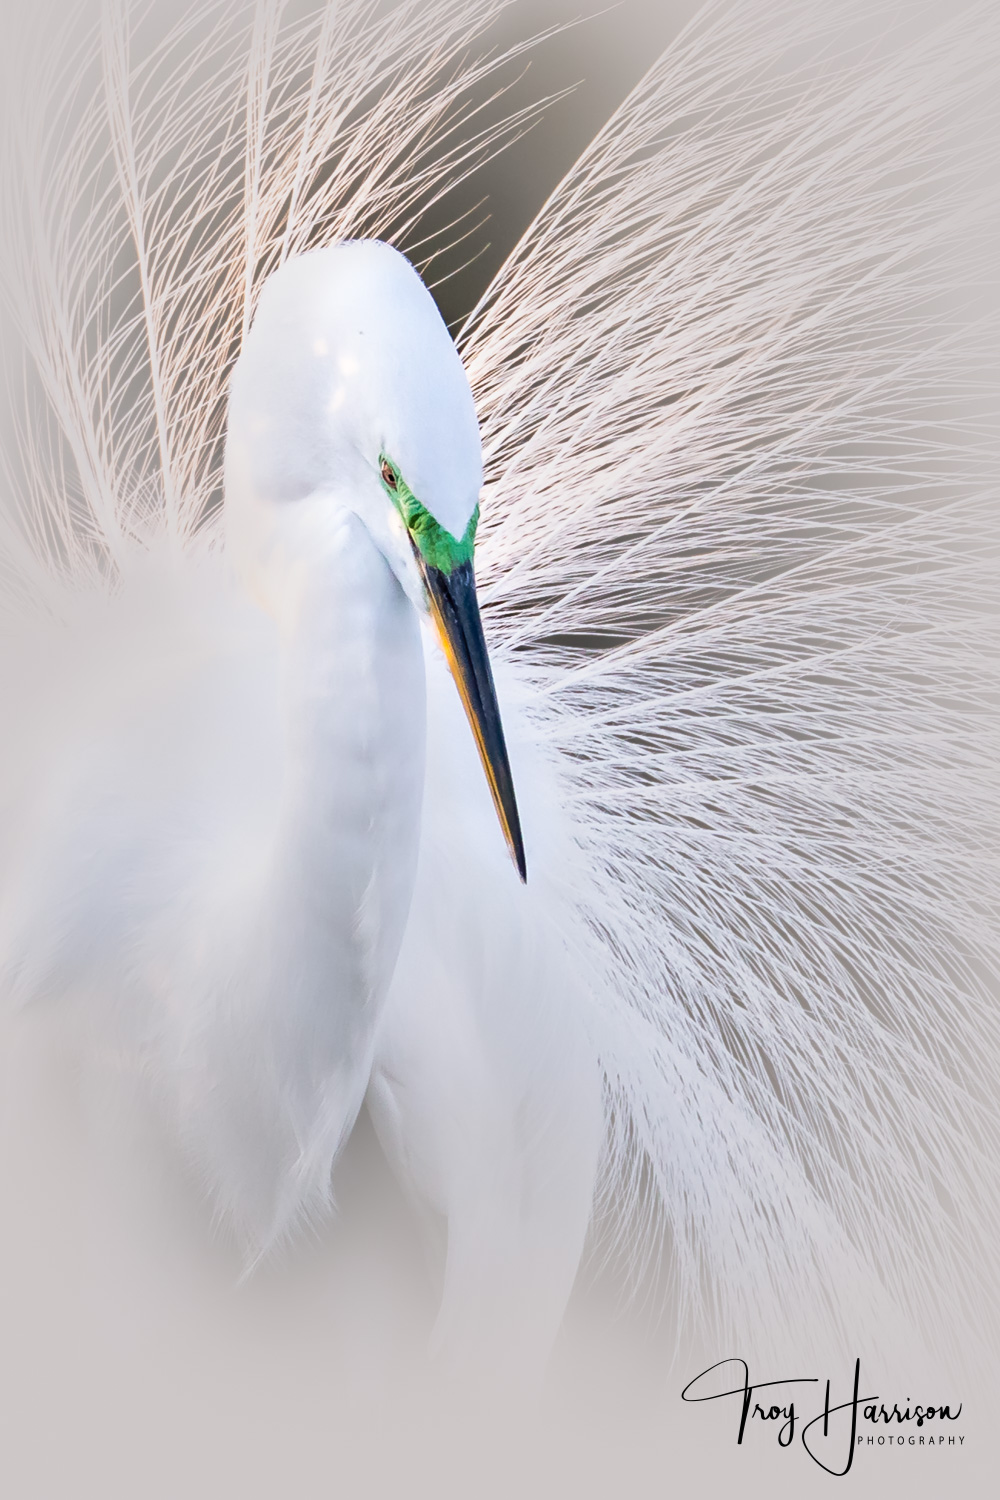 1 - Great Egret, Everglades, Jan. 2019, img 2094 white.jpg